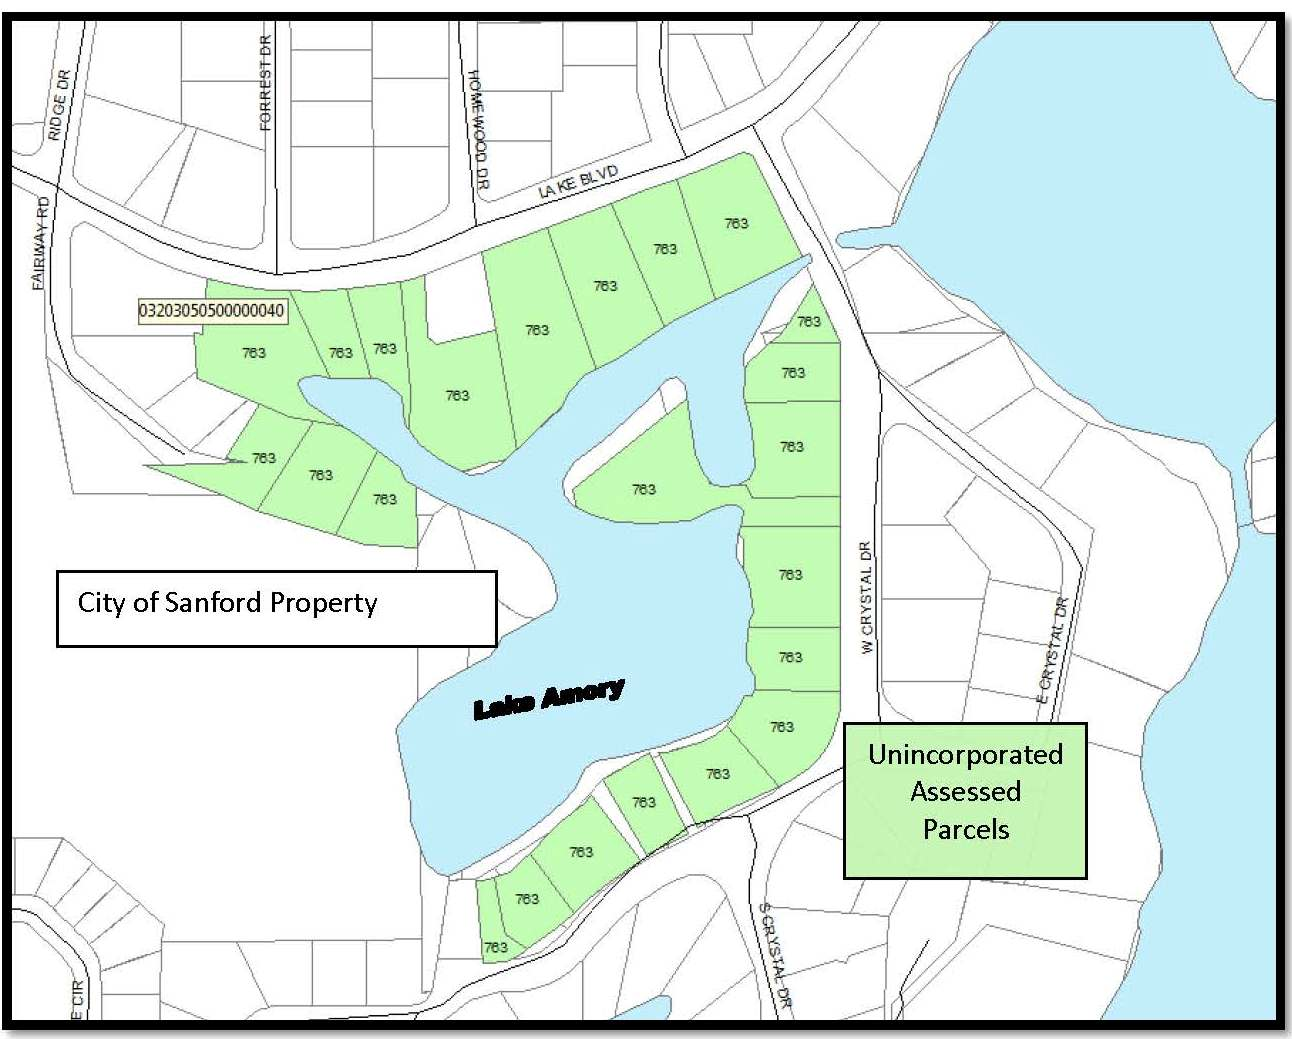 Lake Amory Assessed Parcels Map